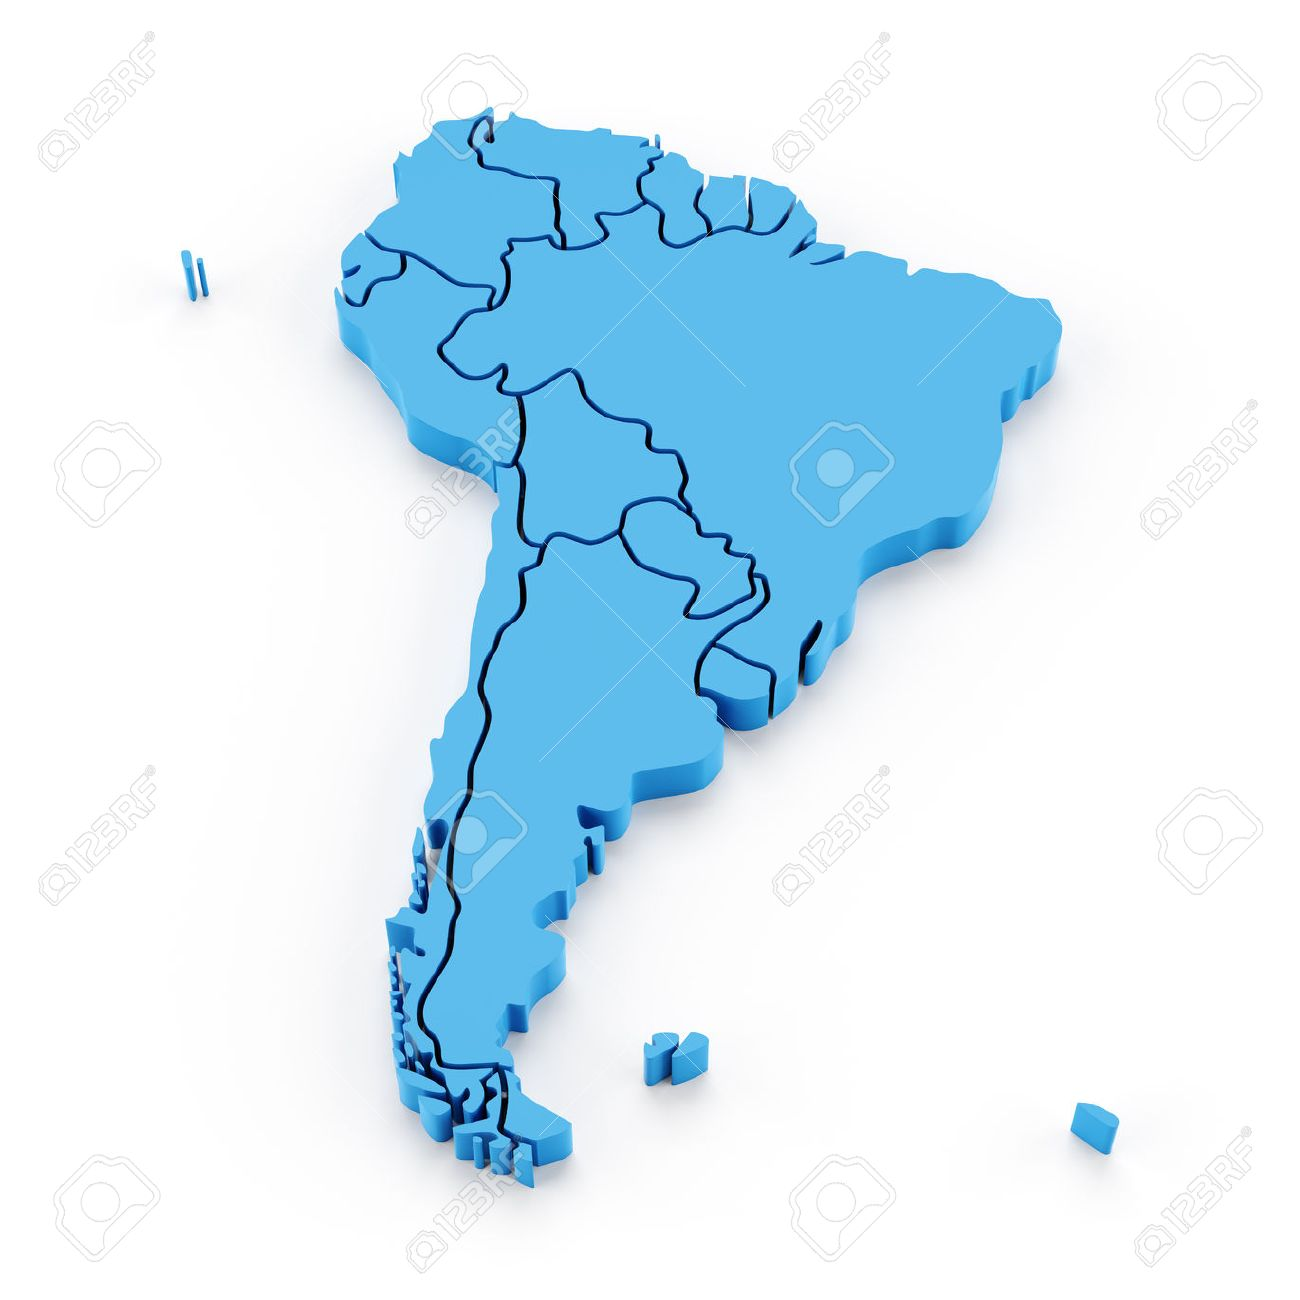 3d Map Of South America.Extruded Map Of South America With National Borders 3d Render